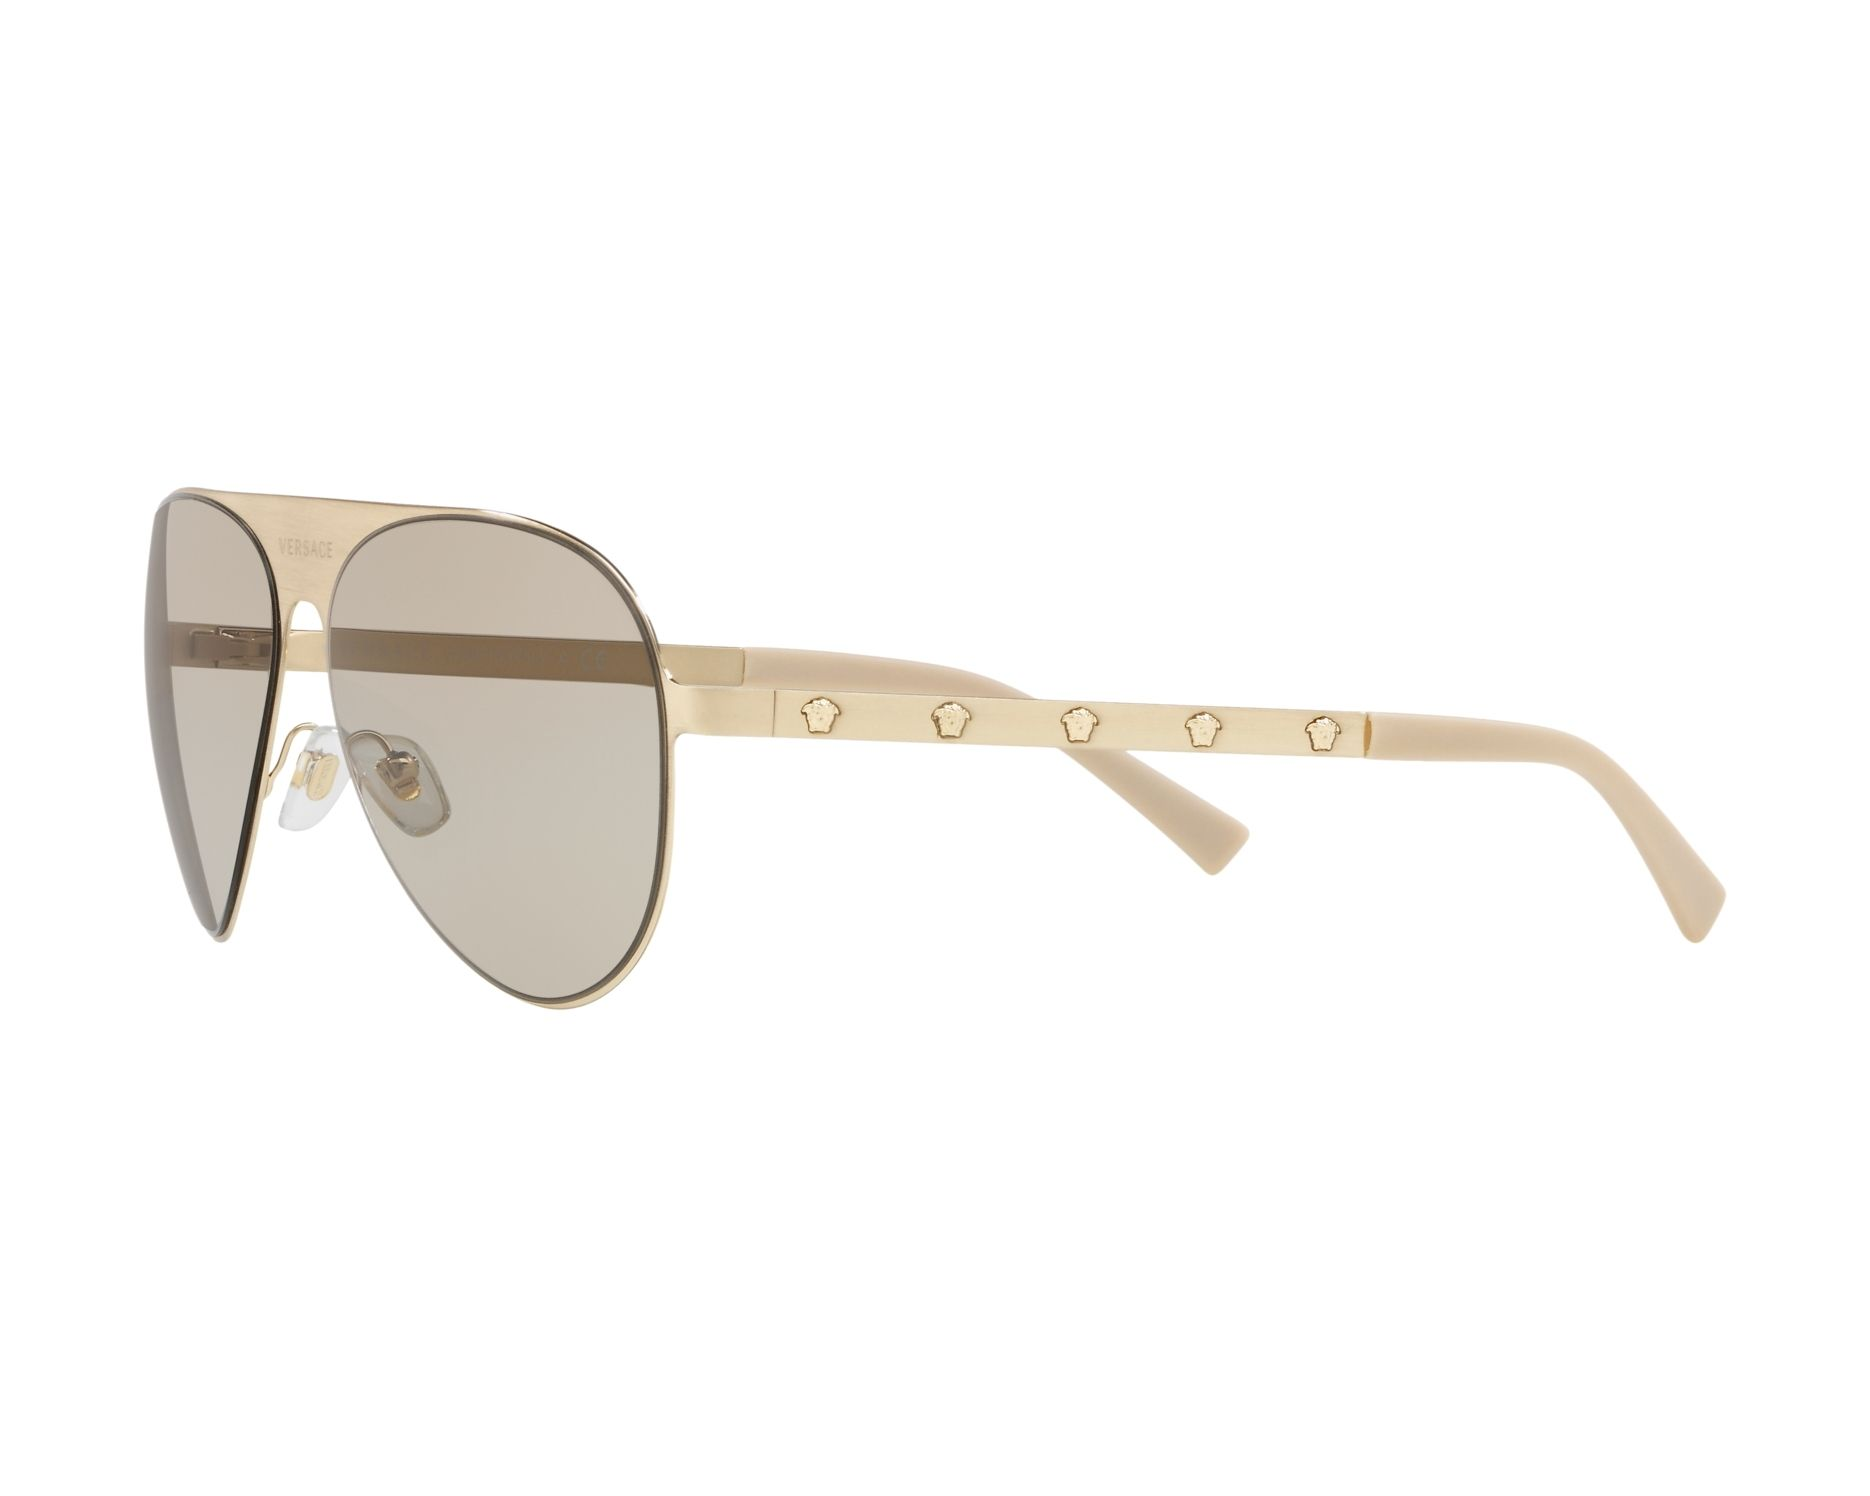 18027e89dbd9 Sunglasses Versace VE-2189 1339 3 59-14 Gold 360 degree view 3